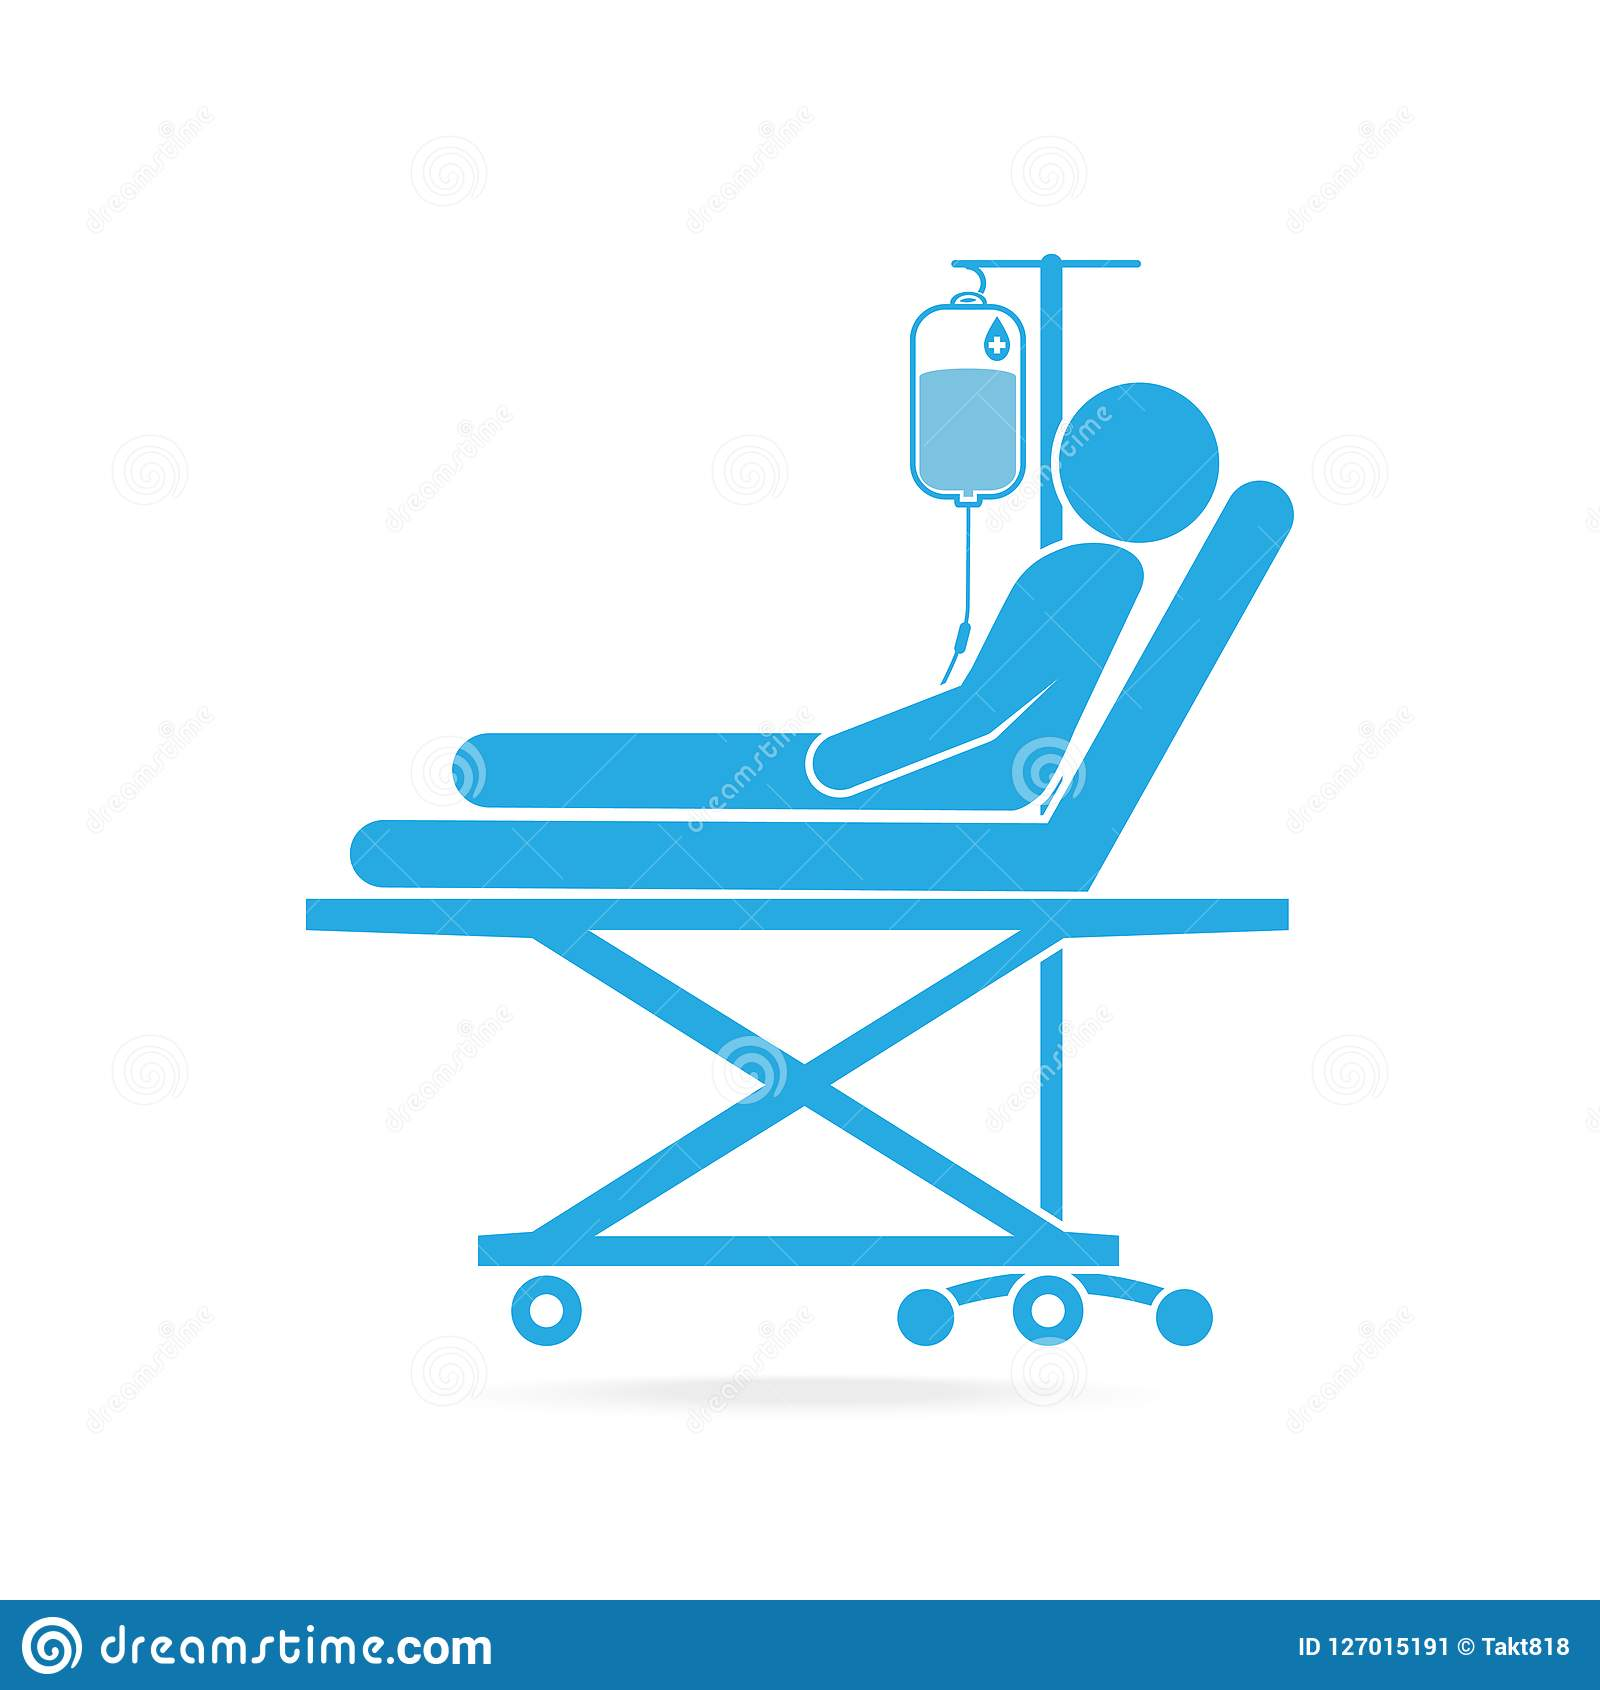 Patient lying in bed with a drop counter icon